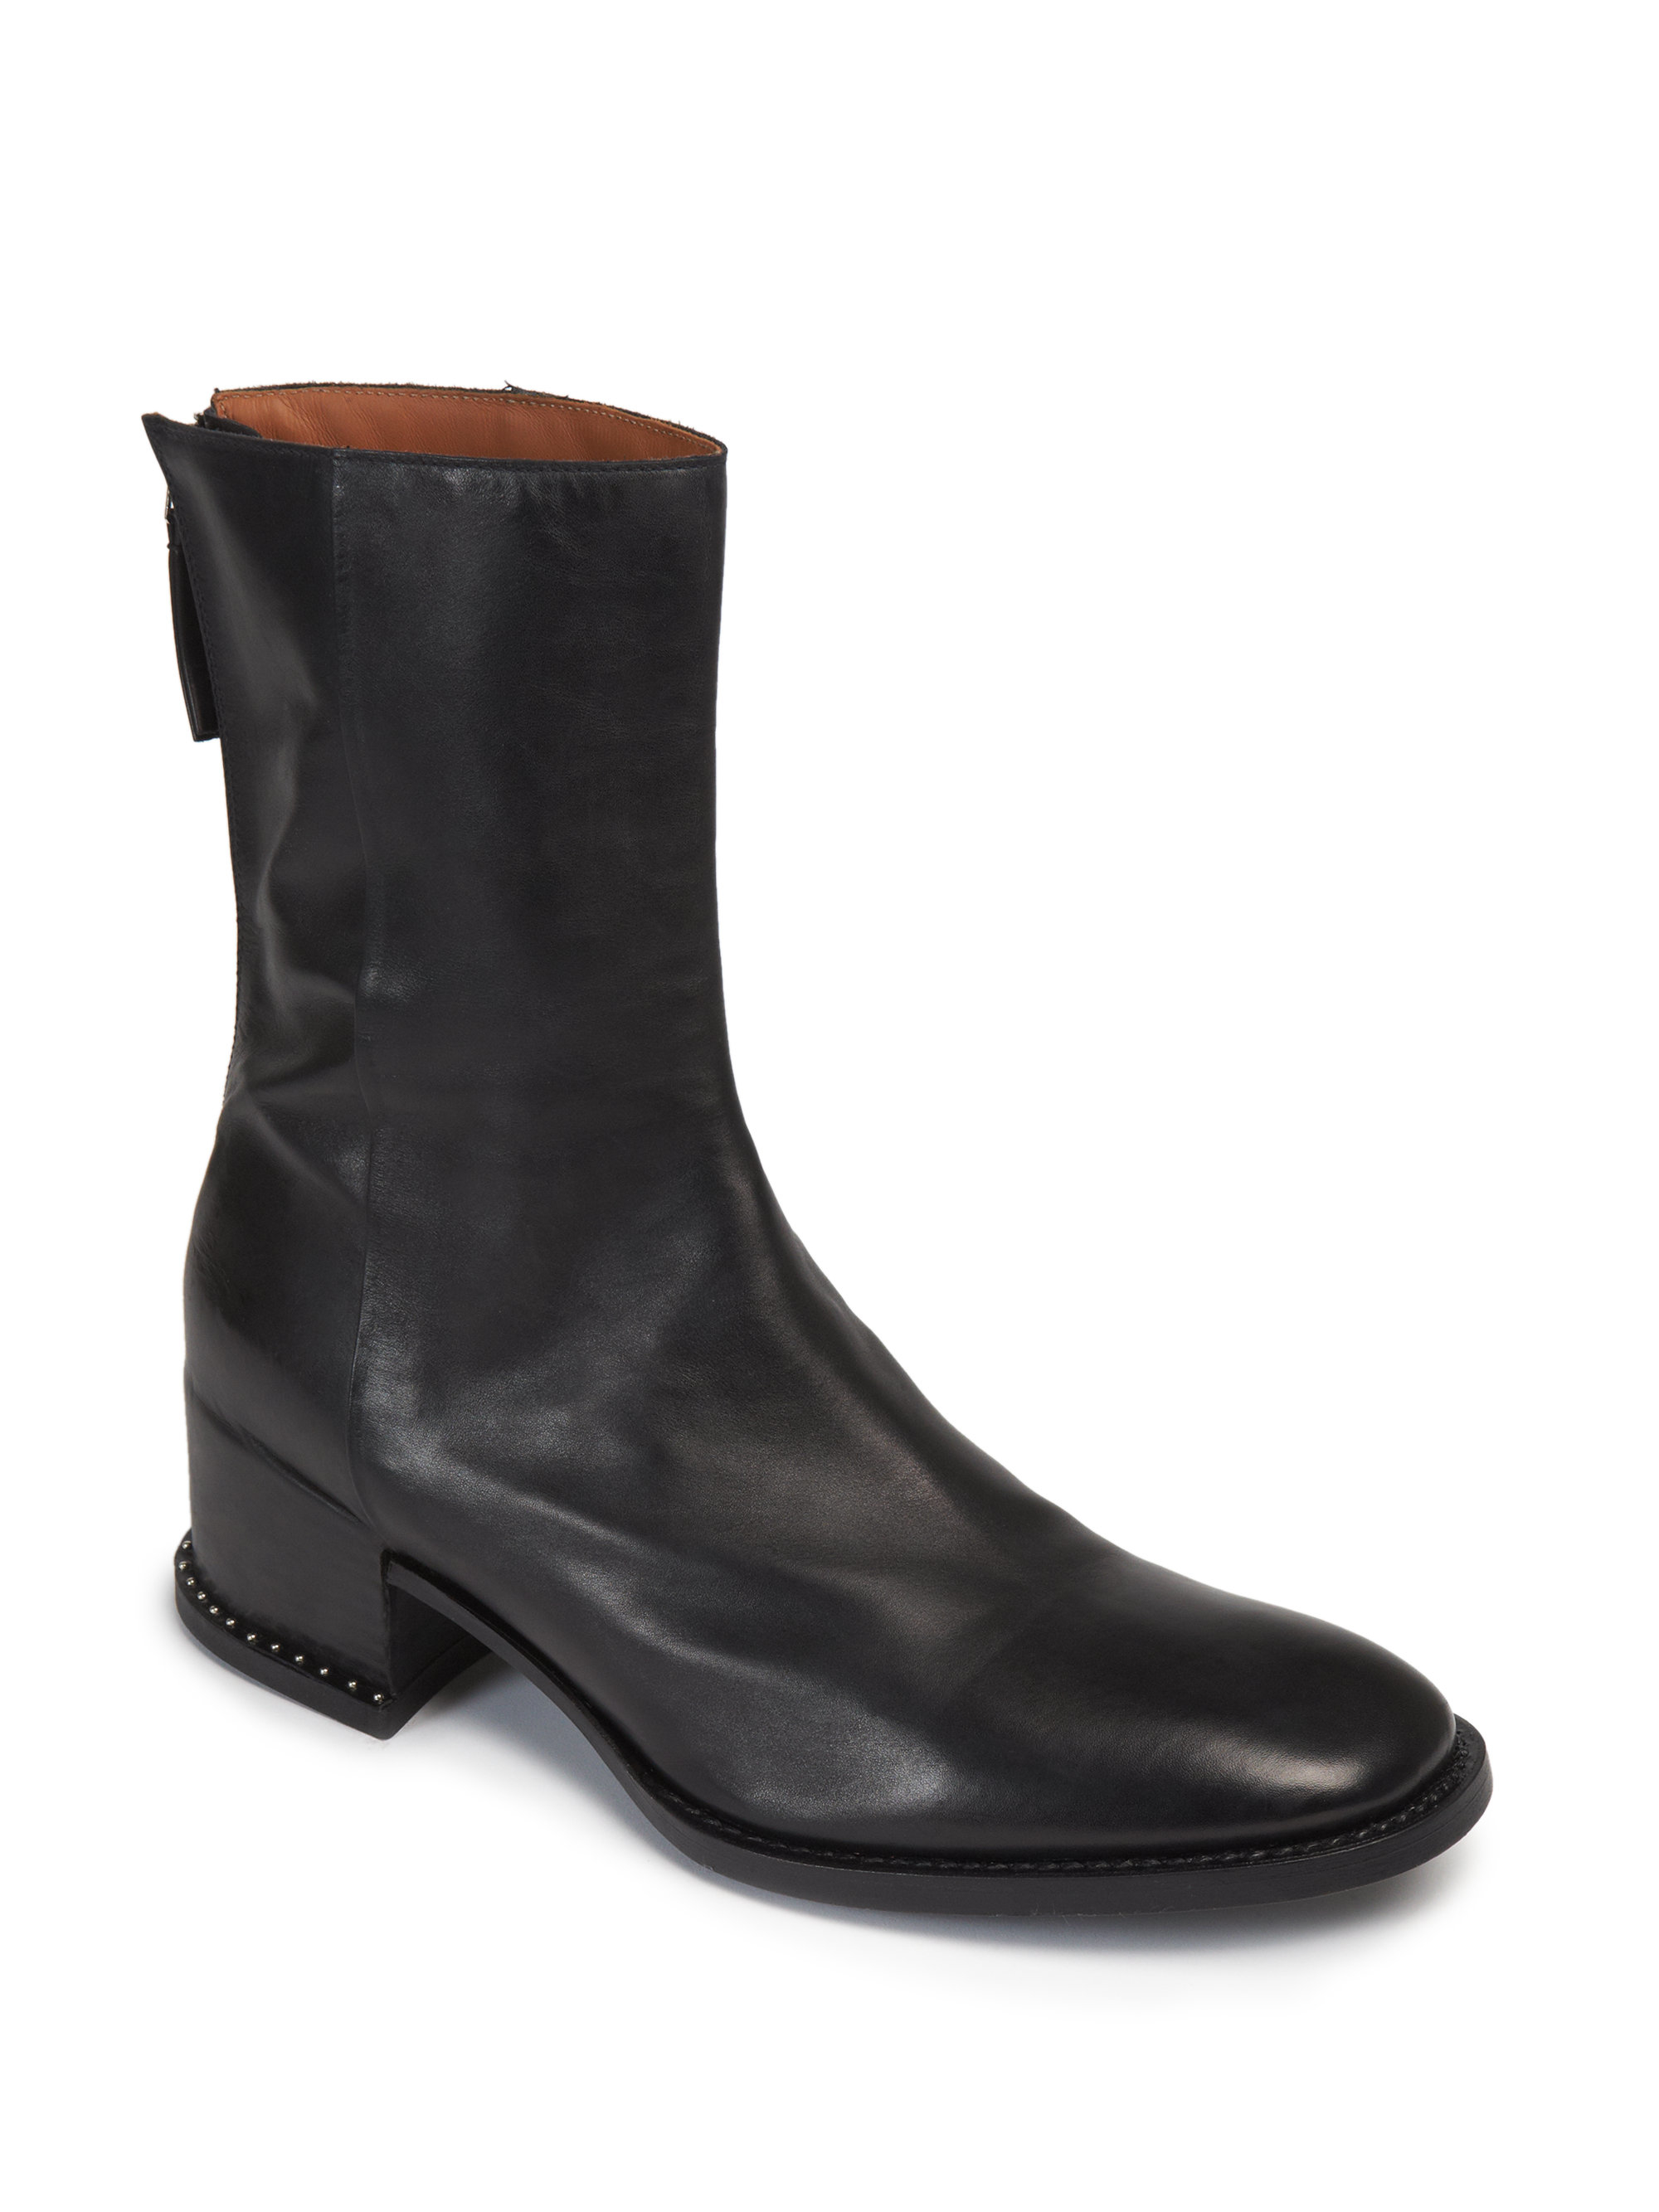 Lyst Givenchy Runway Studded Sole Leather Ankle Boots In